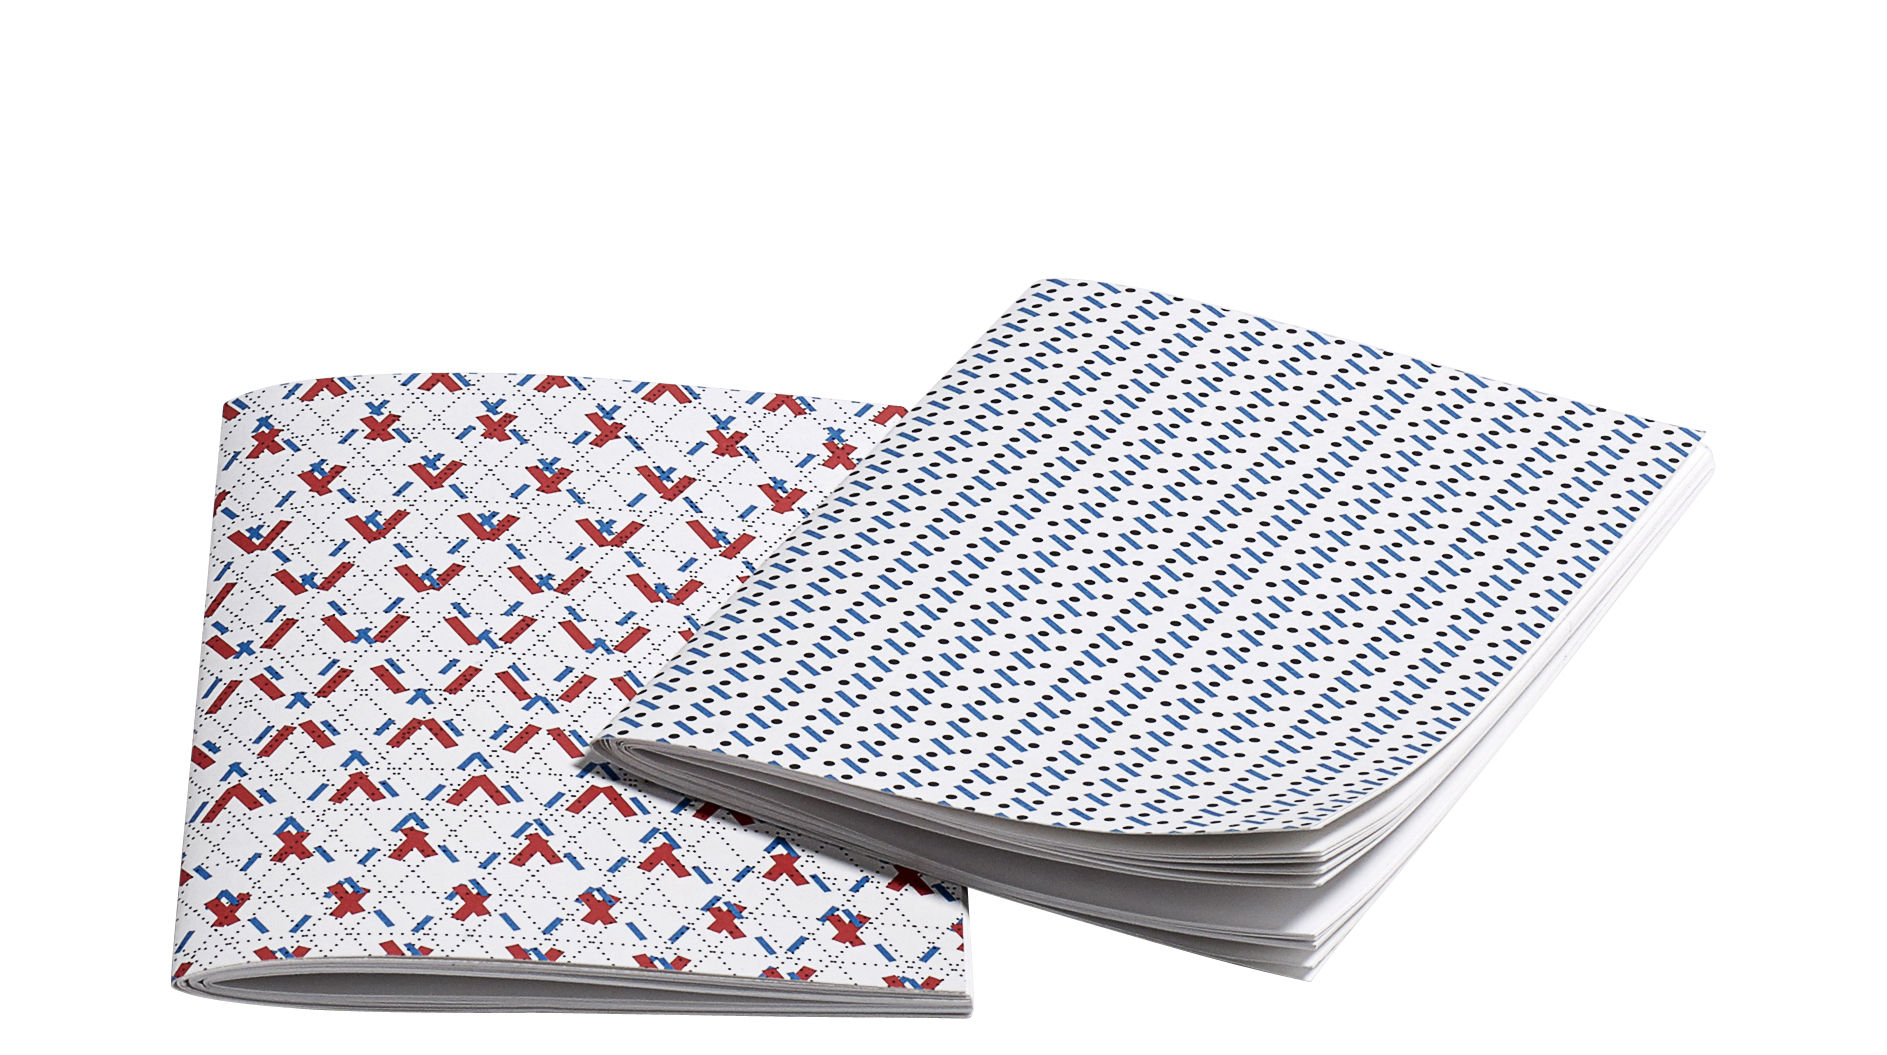 Accessories - Desk & Office Accessories - Line Dot Small Notepad - Set of 2 - 14 x 9,5 cm by Hay - Blue & red - Paper